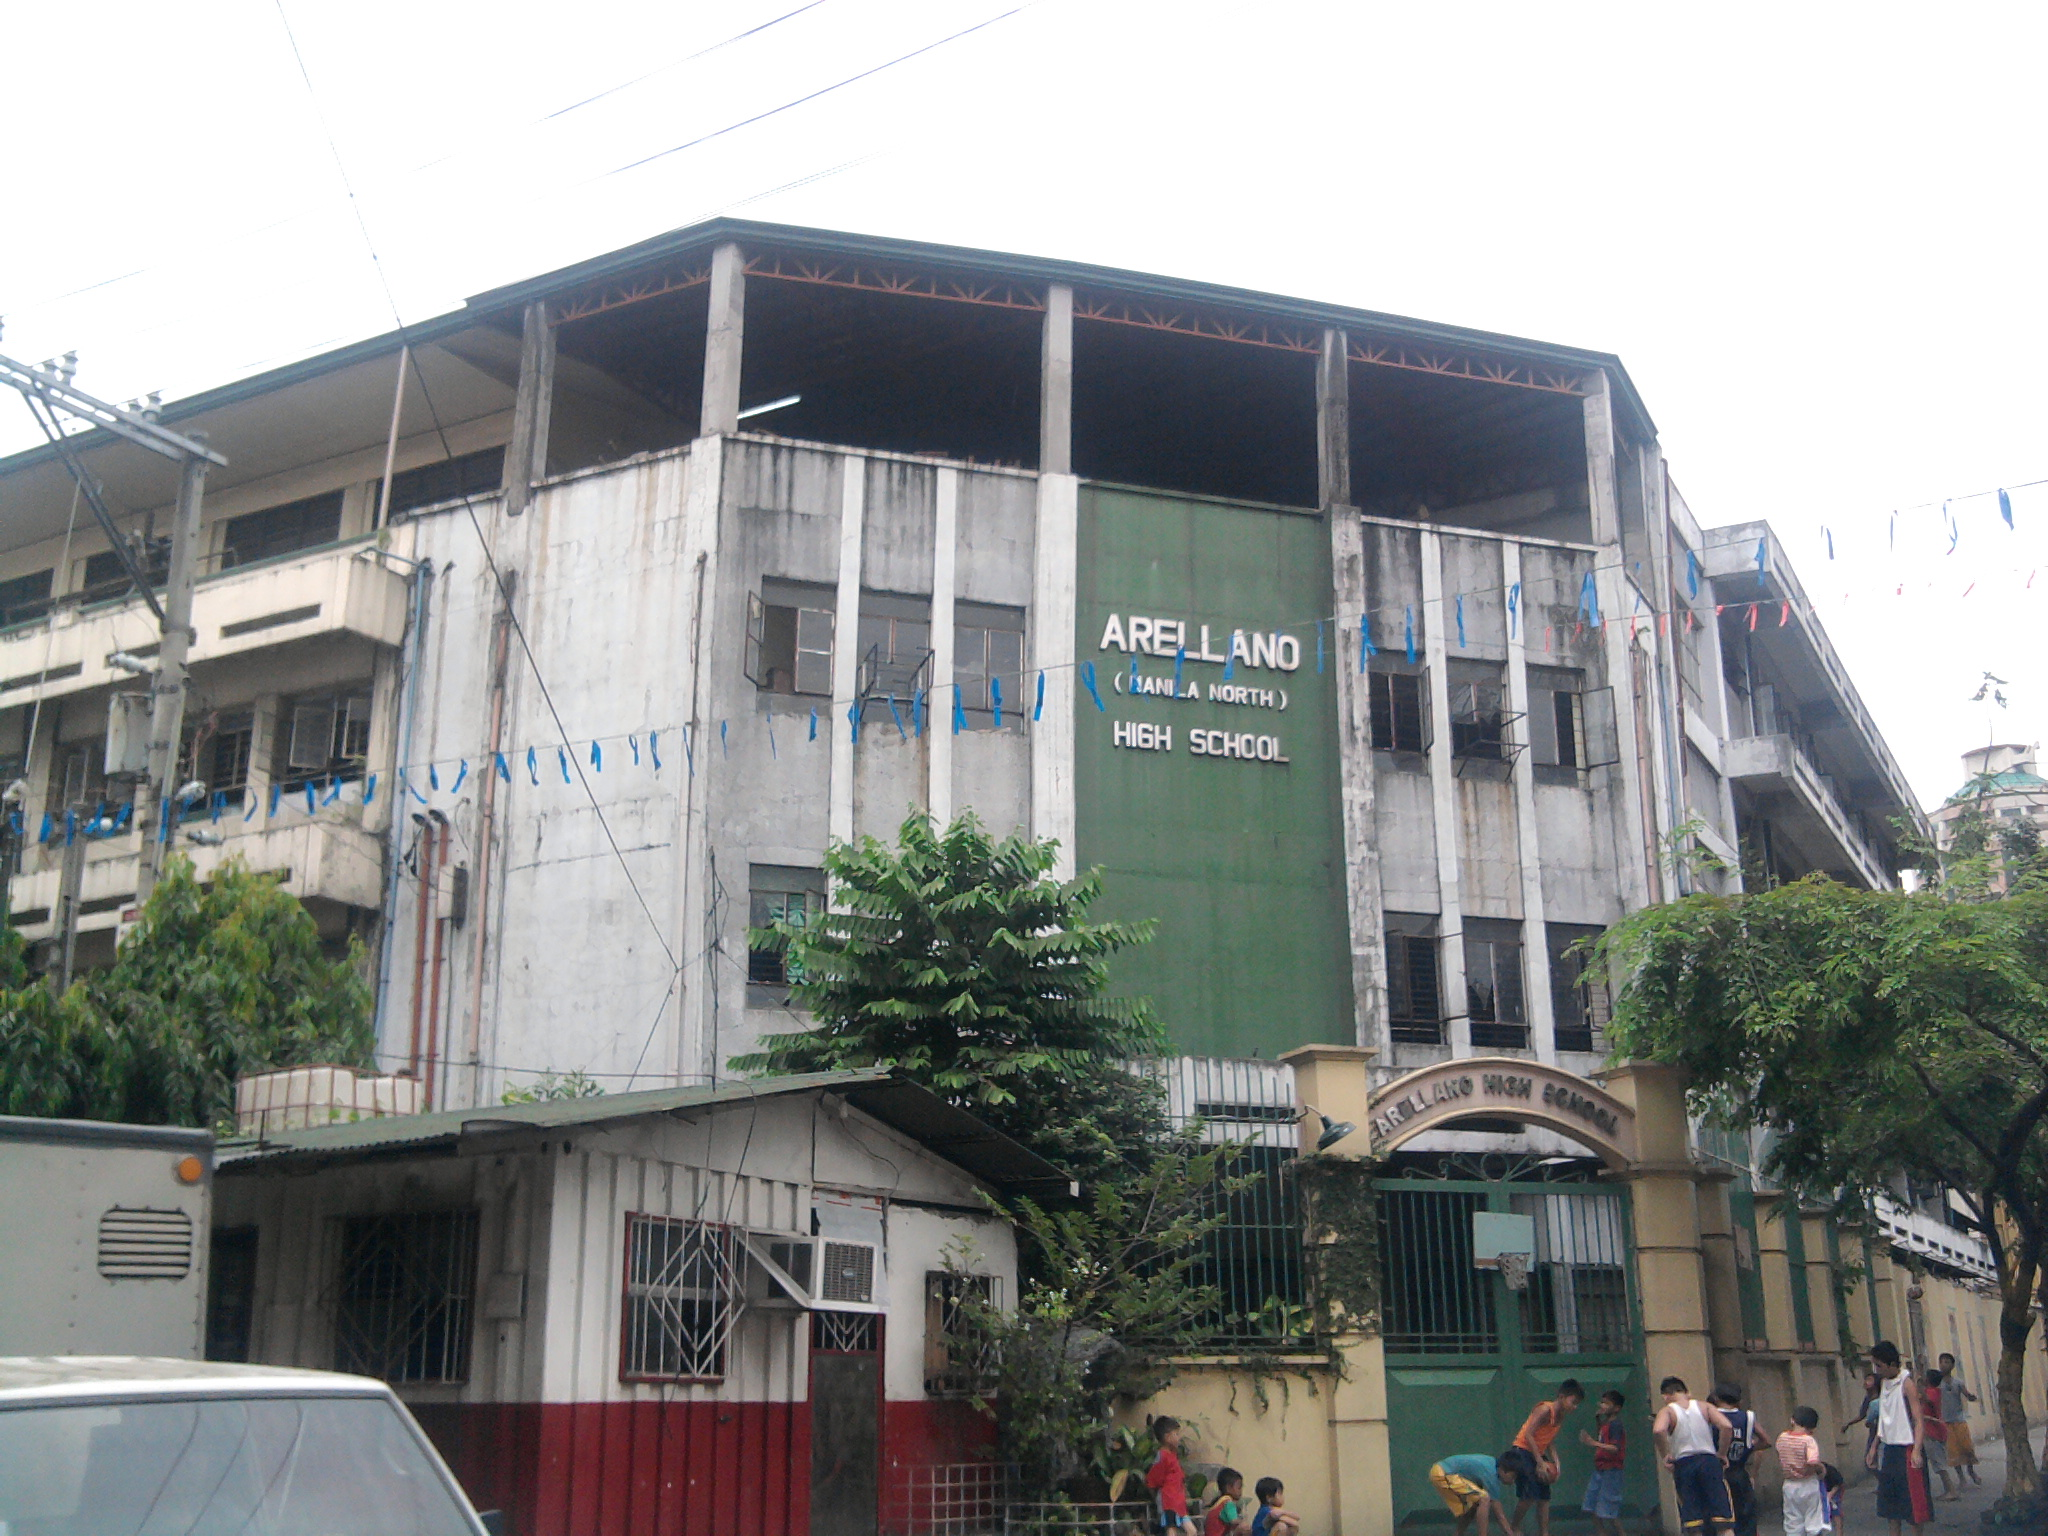 philippine maritime institute sta cruz manila http://www.zamboanga.com/z/index.php?title=File:Arellano_High_School_(Manila_North)_Sta._Cruz,_Manila.jpg